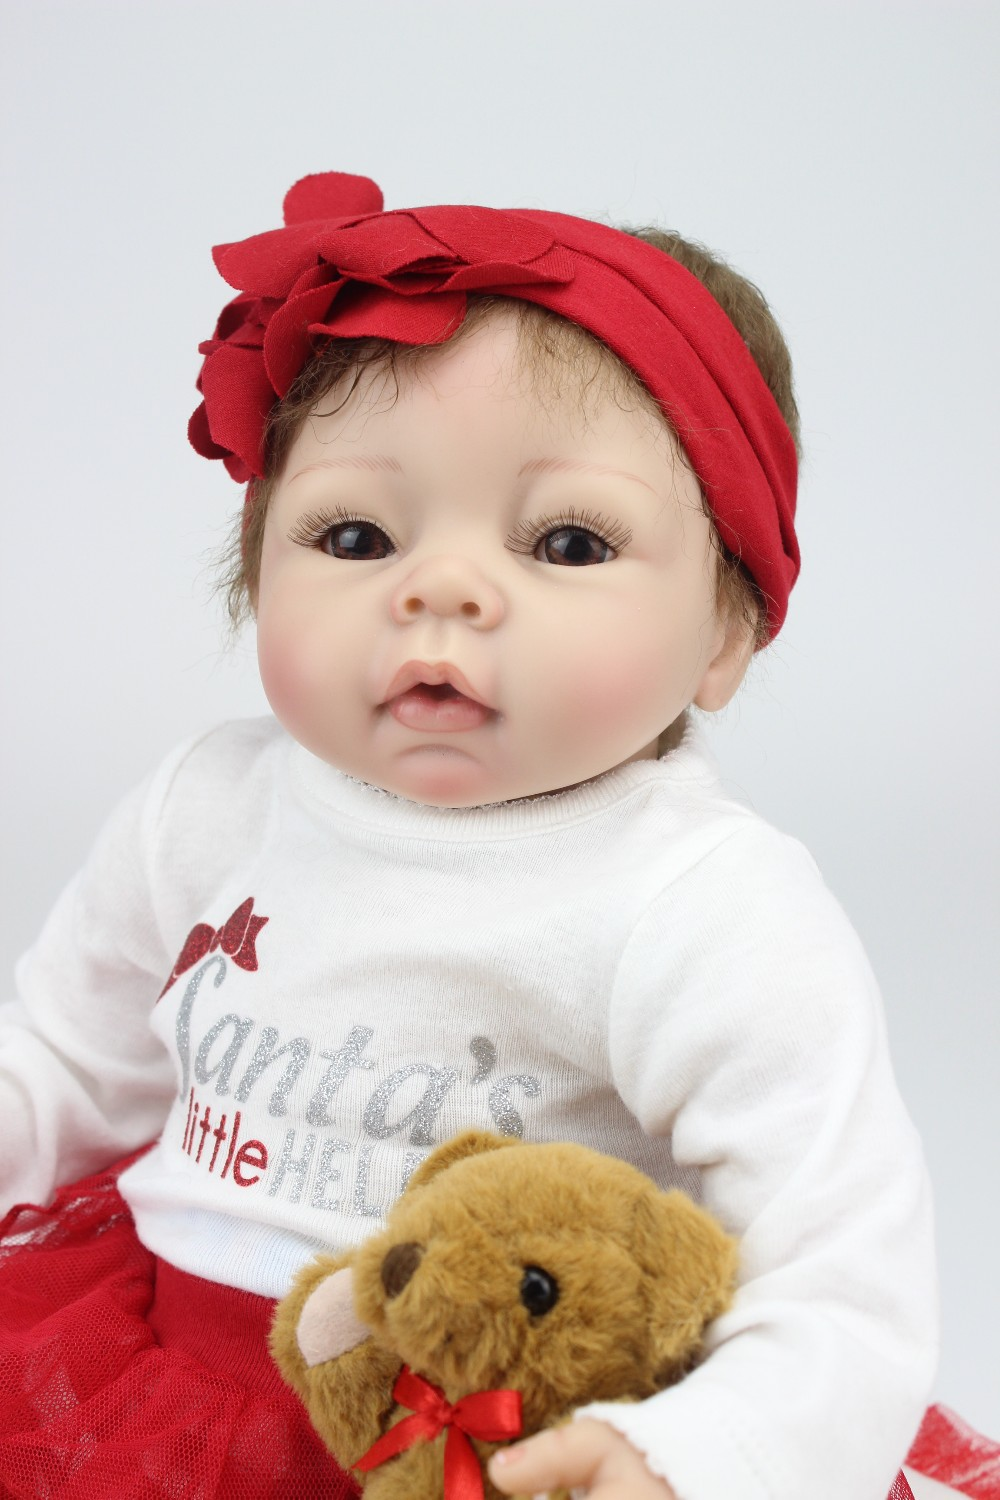 wholesale realistic simulation reborn baby doll soft silicone vinyl real gentle touch newborn wholesale realistic simulation reborn baby doll soft silicone vinyl real gentle touch rooted human hair